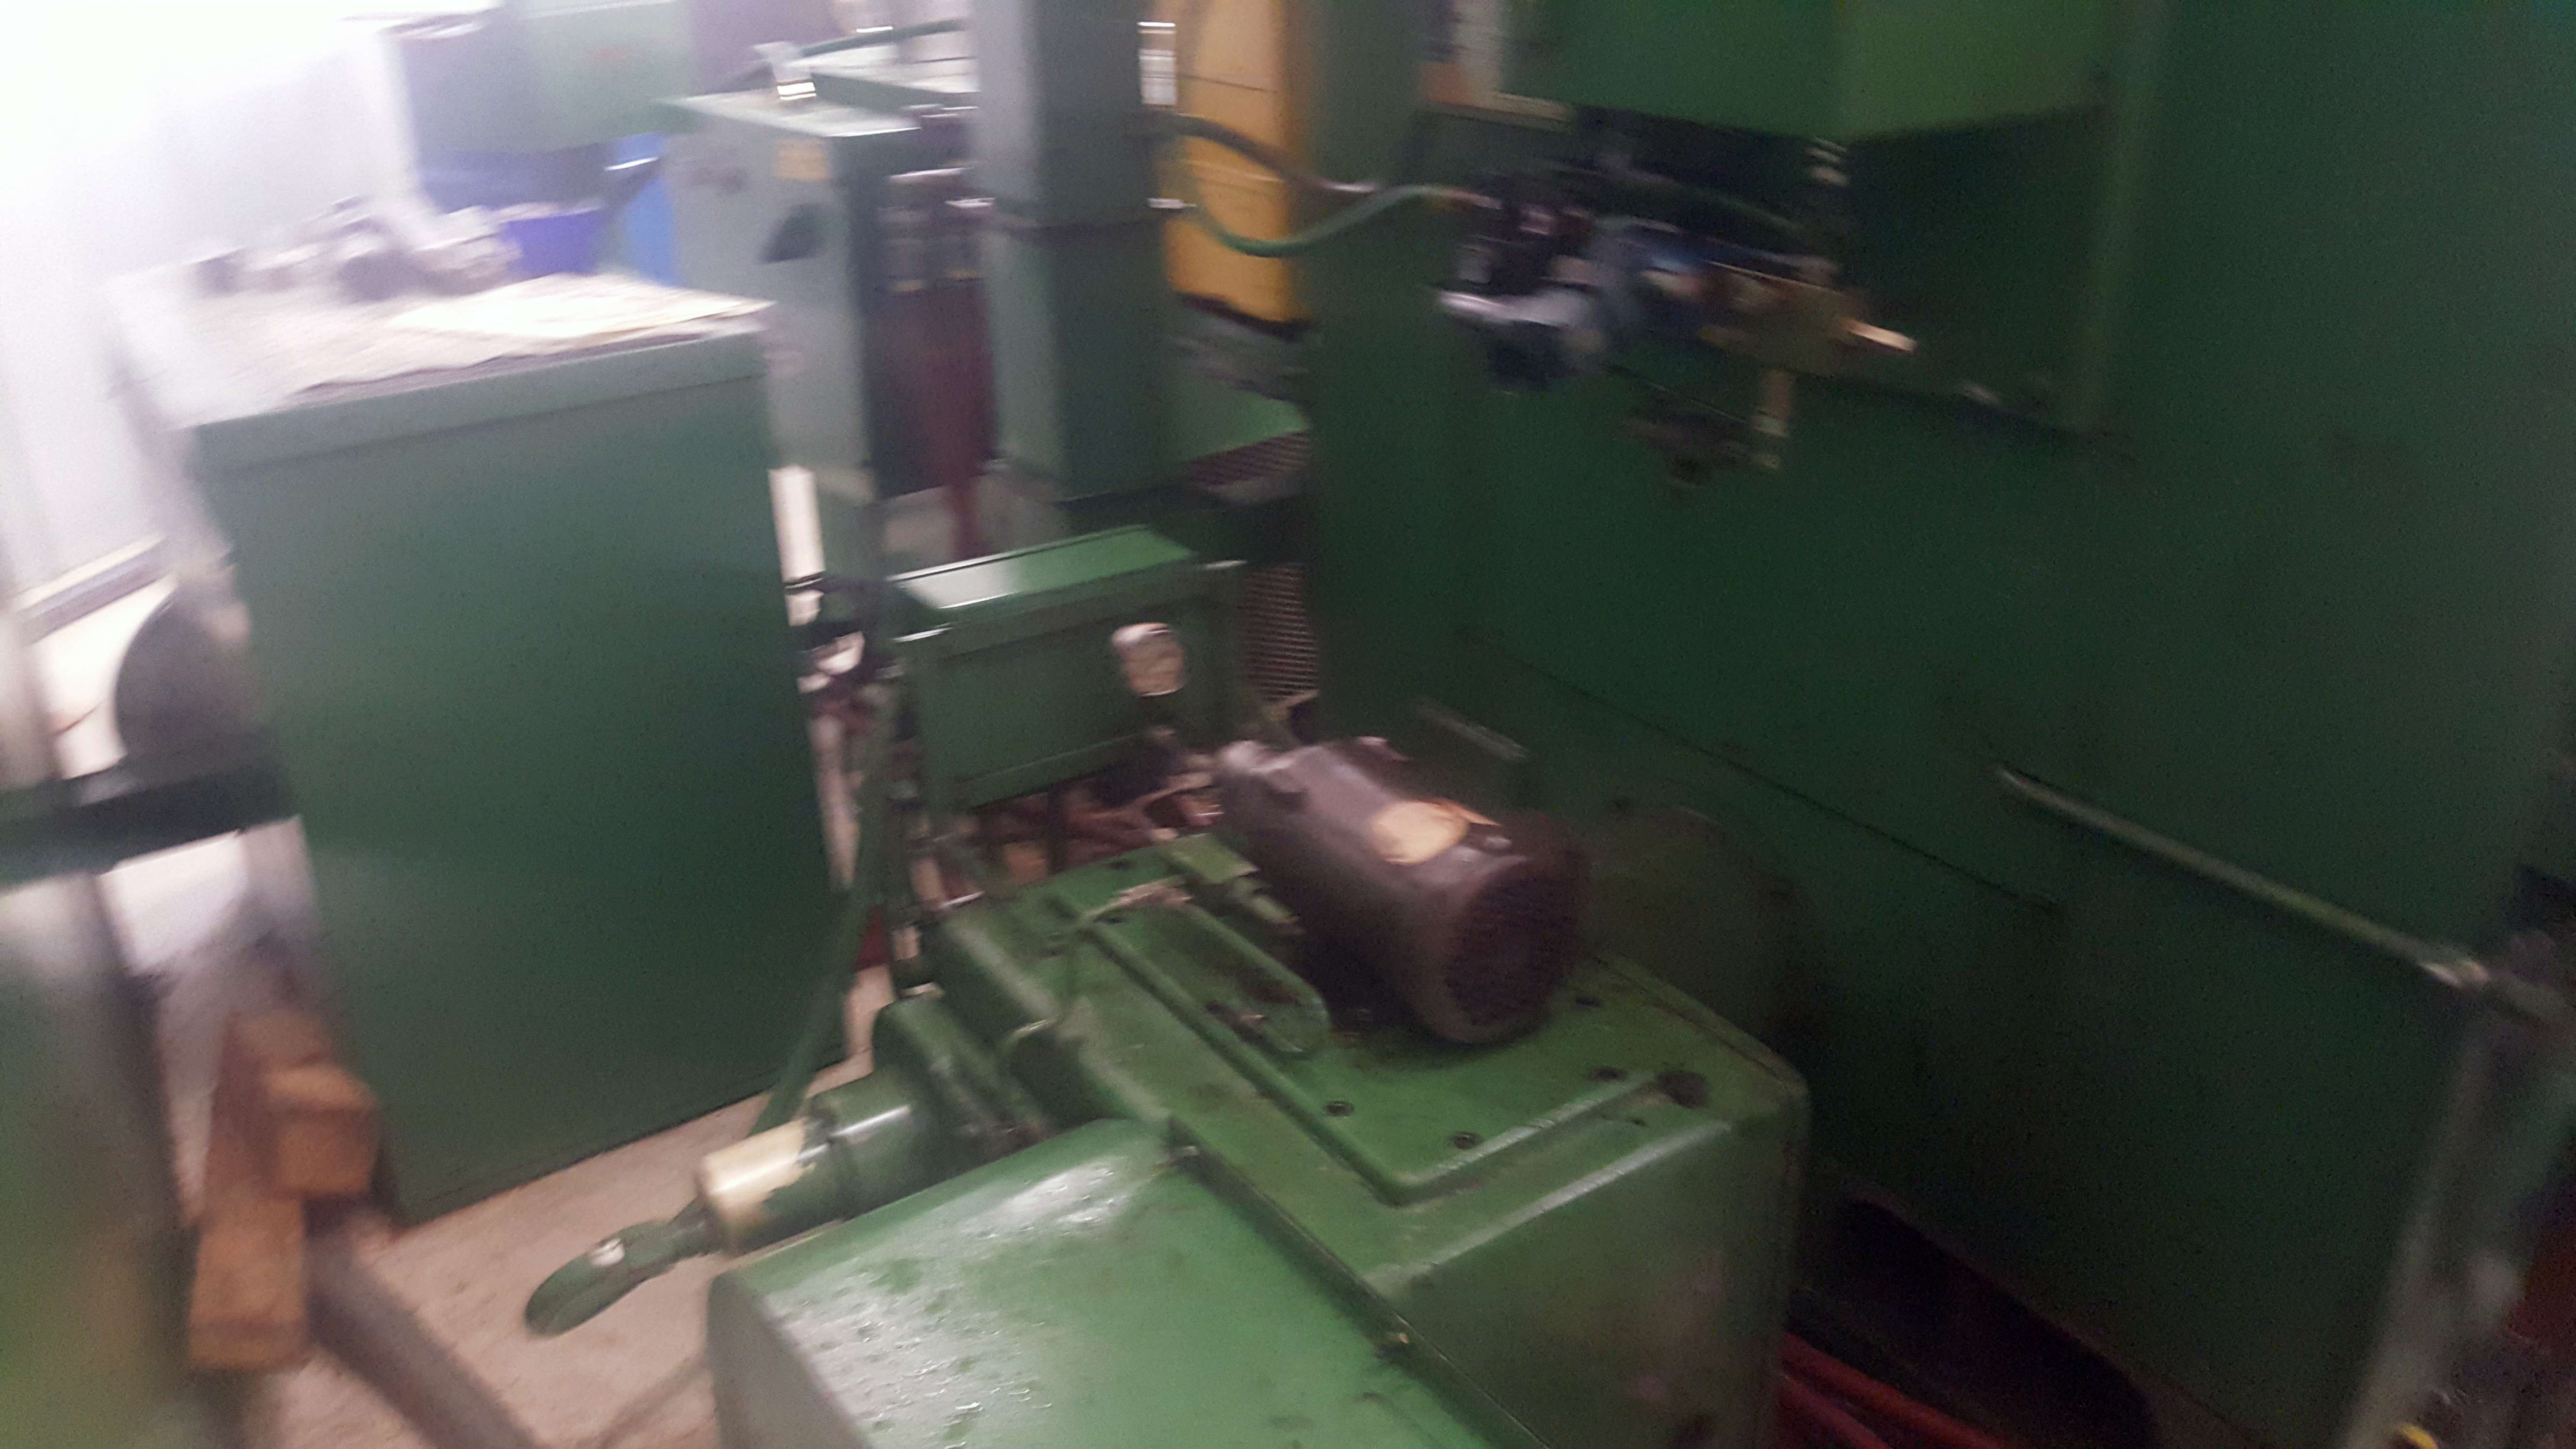 """Gray 42"""" table CNC Vertical Turing and boring lathe, Allen Bradley 8200 control, under power - Image 10 of 16"""